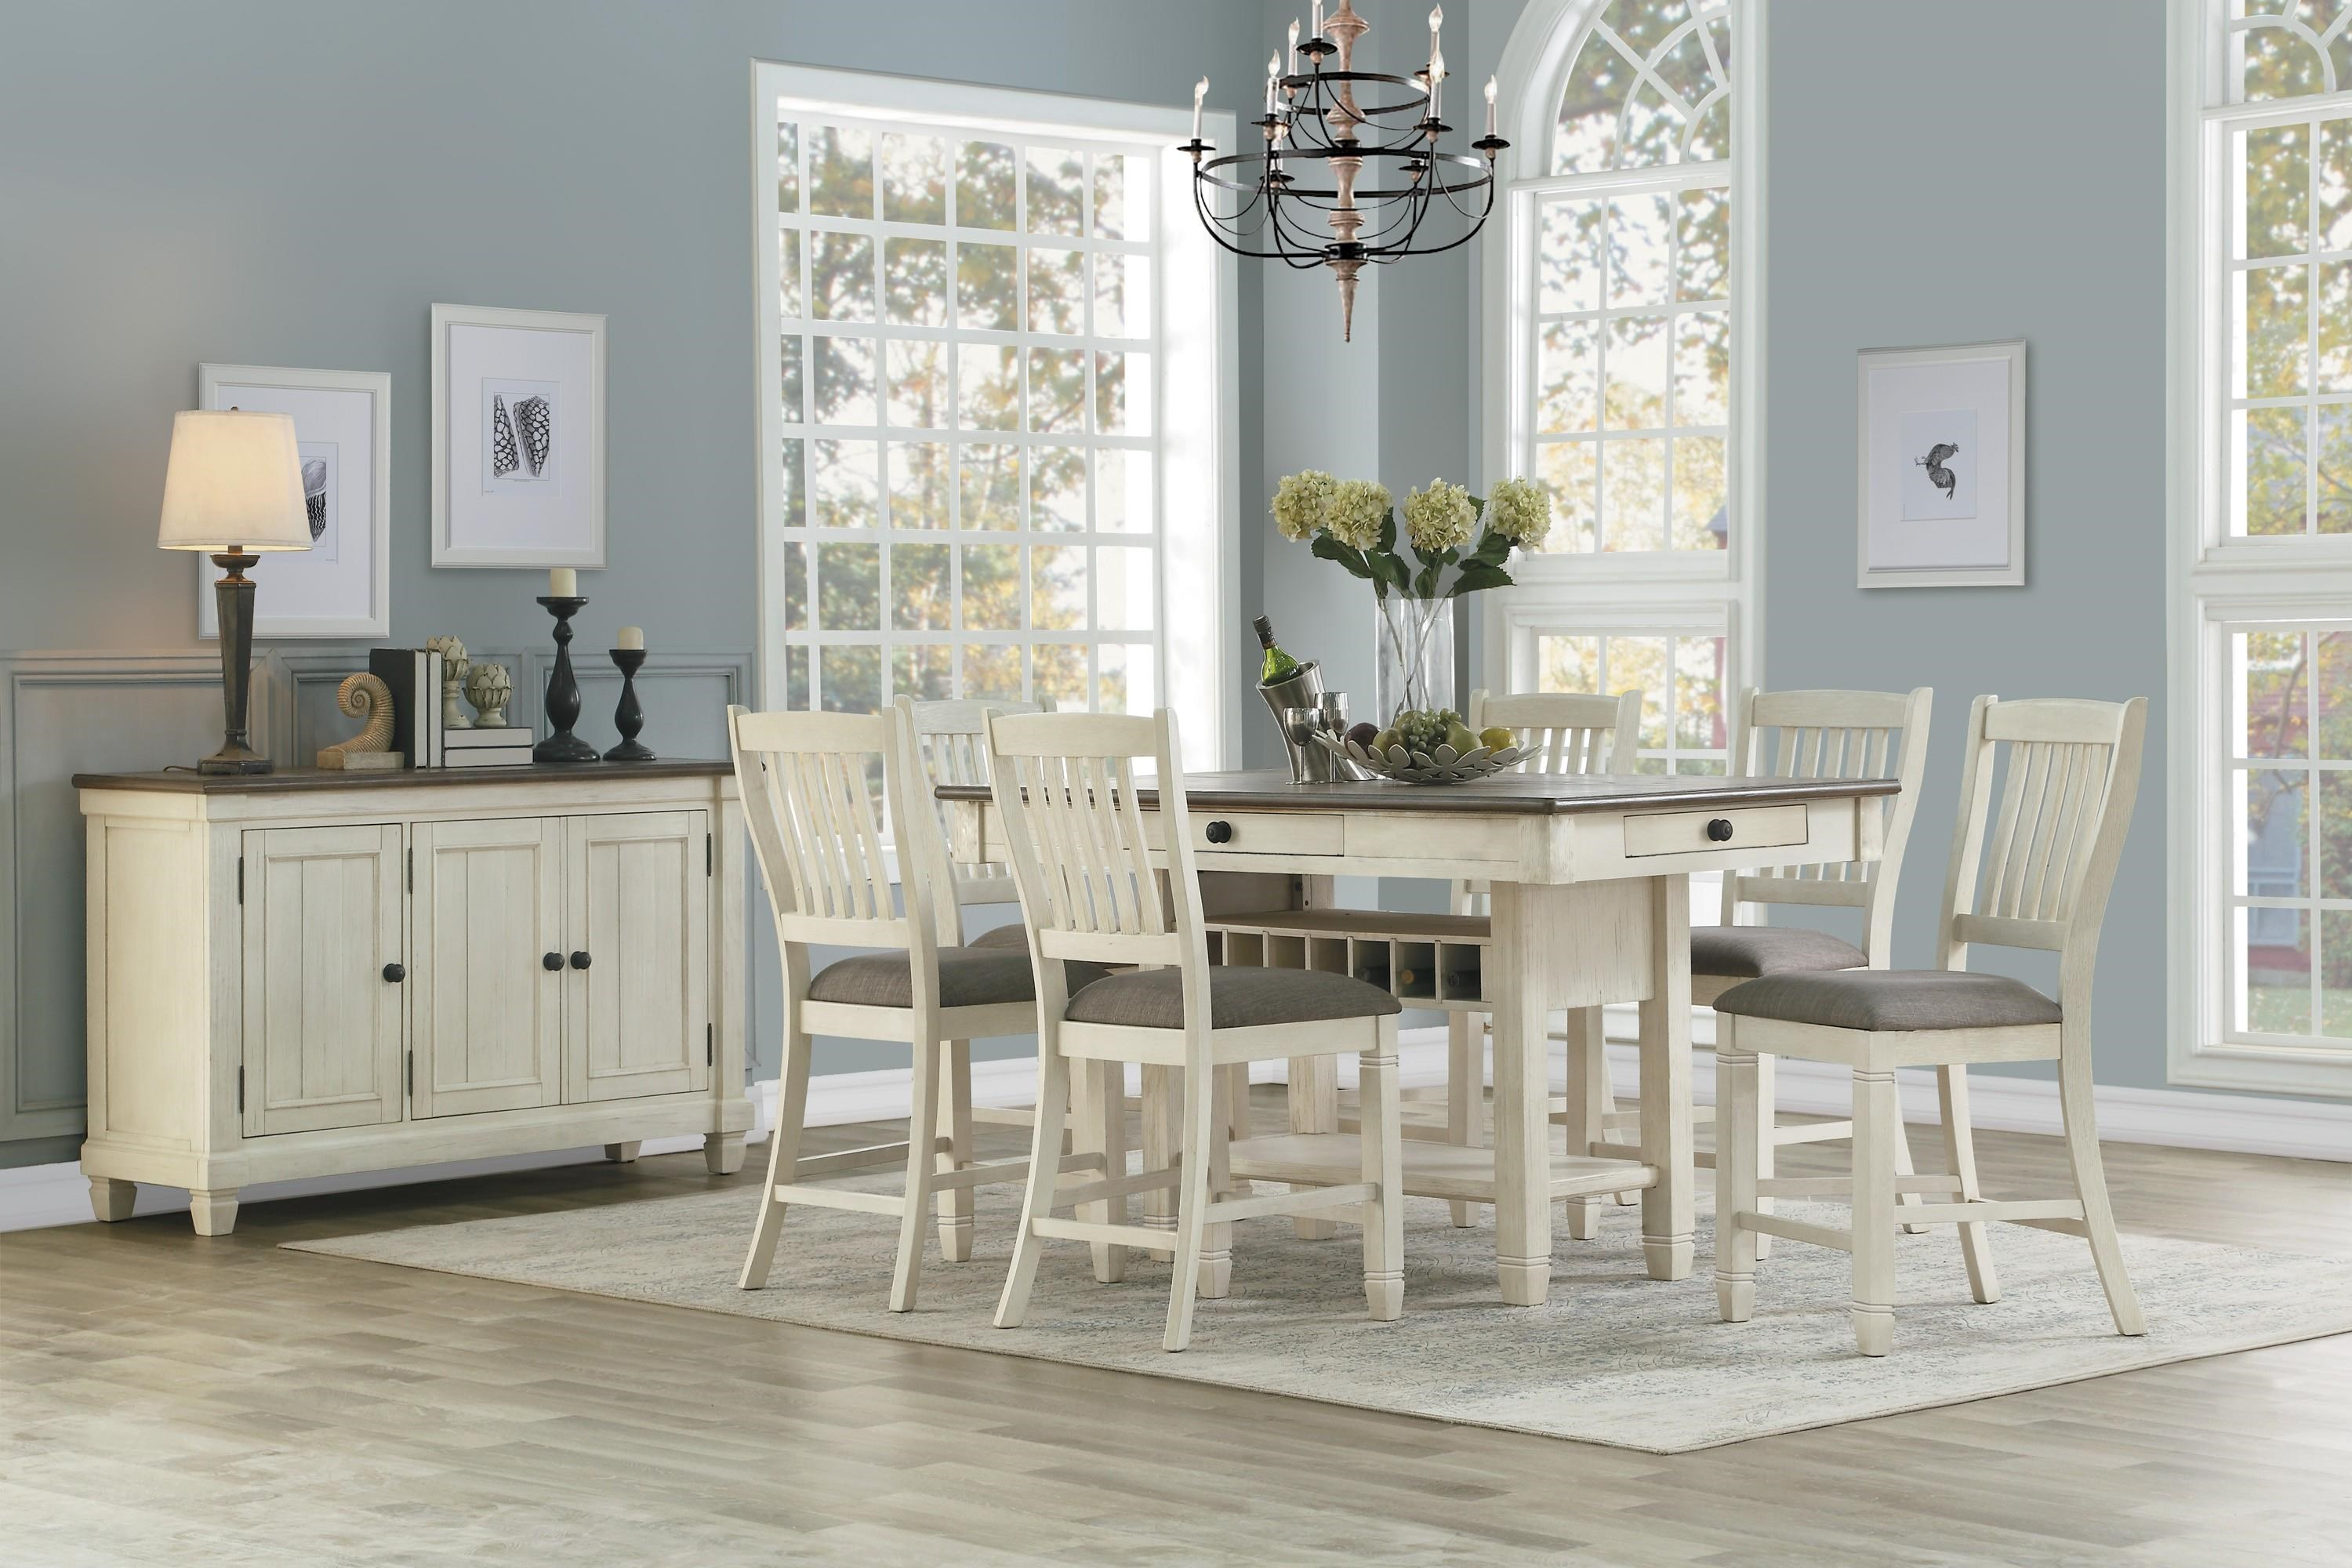 Counter Dining Table & Chair Set